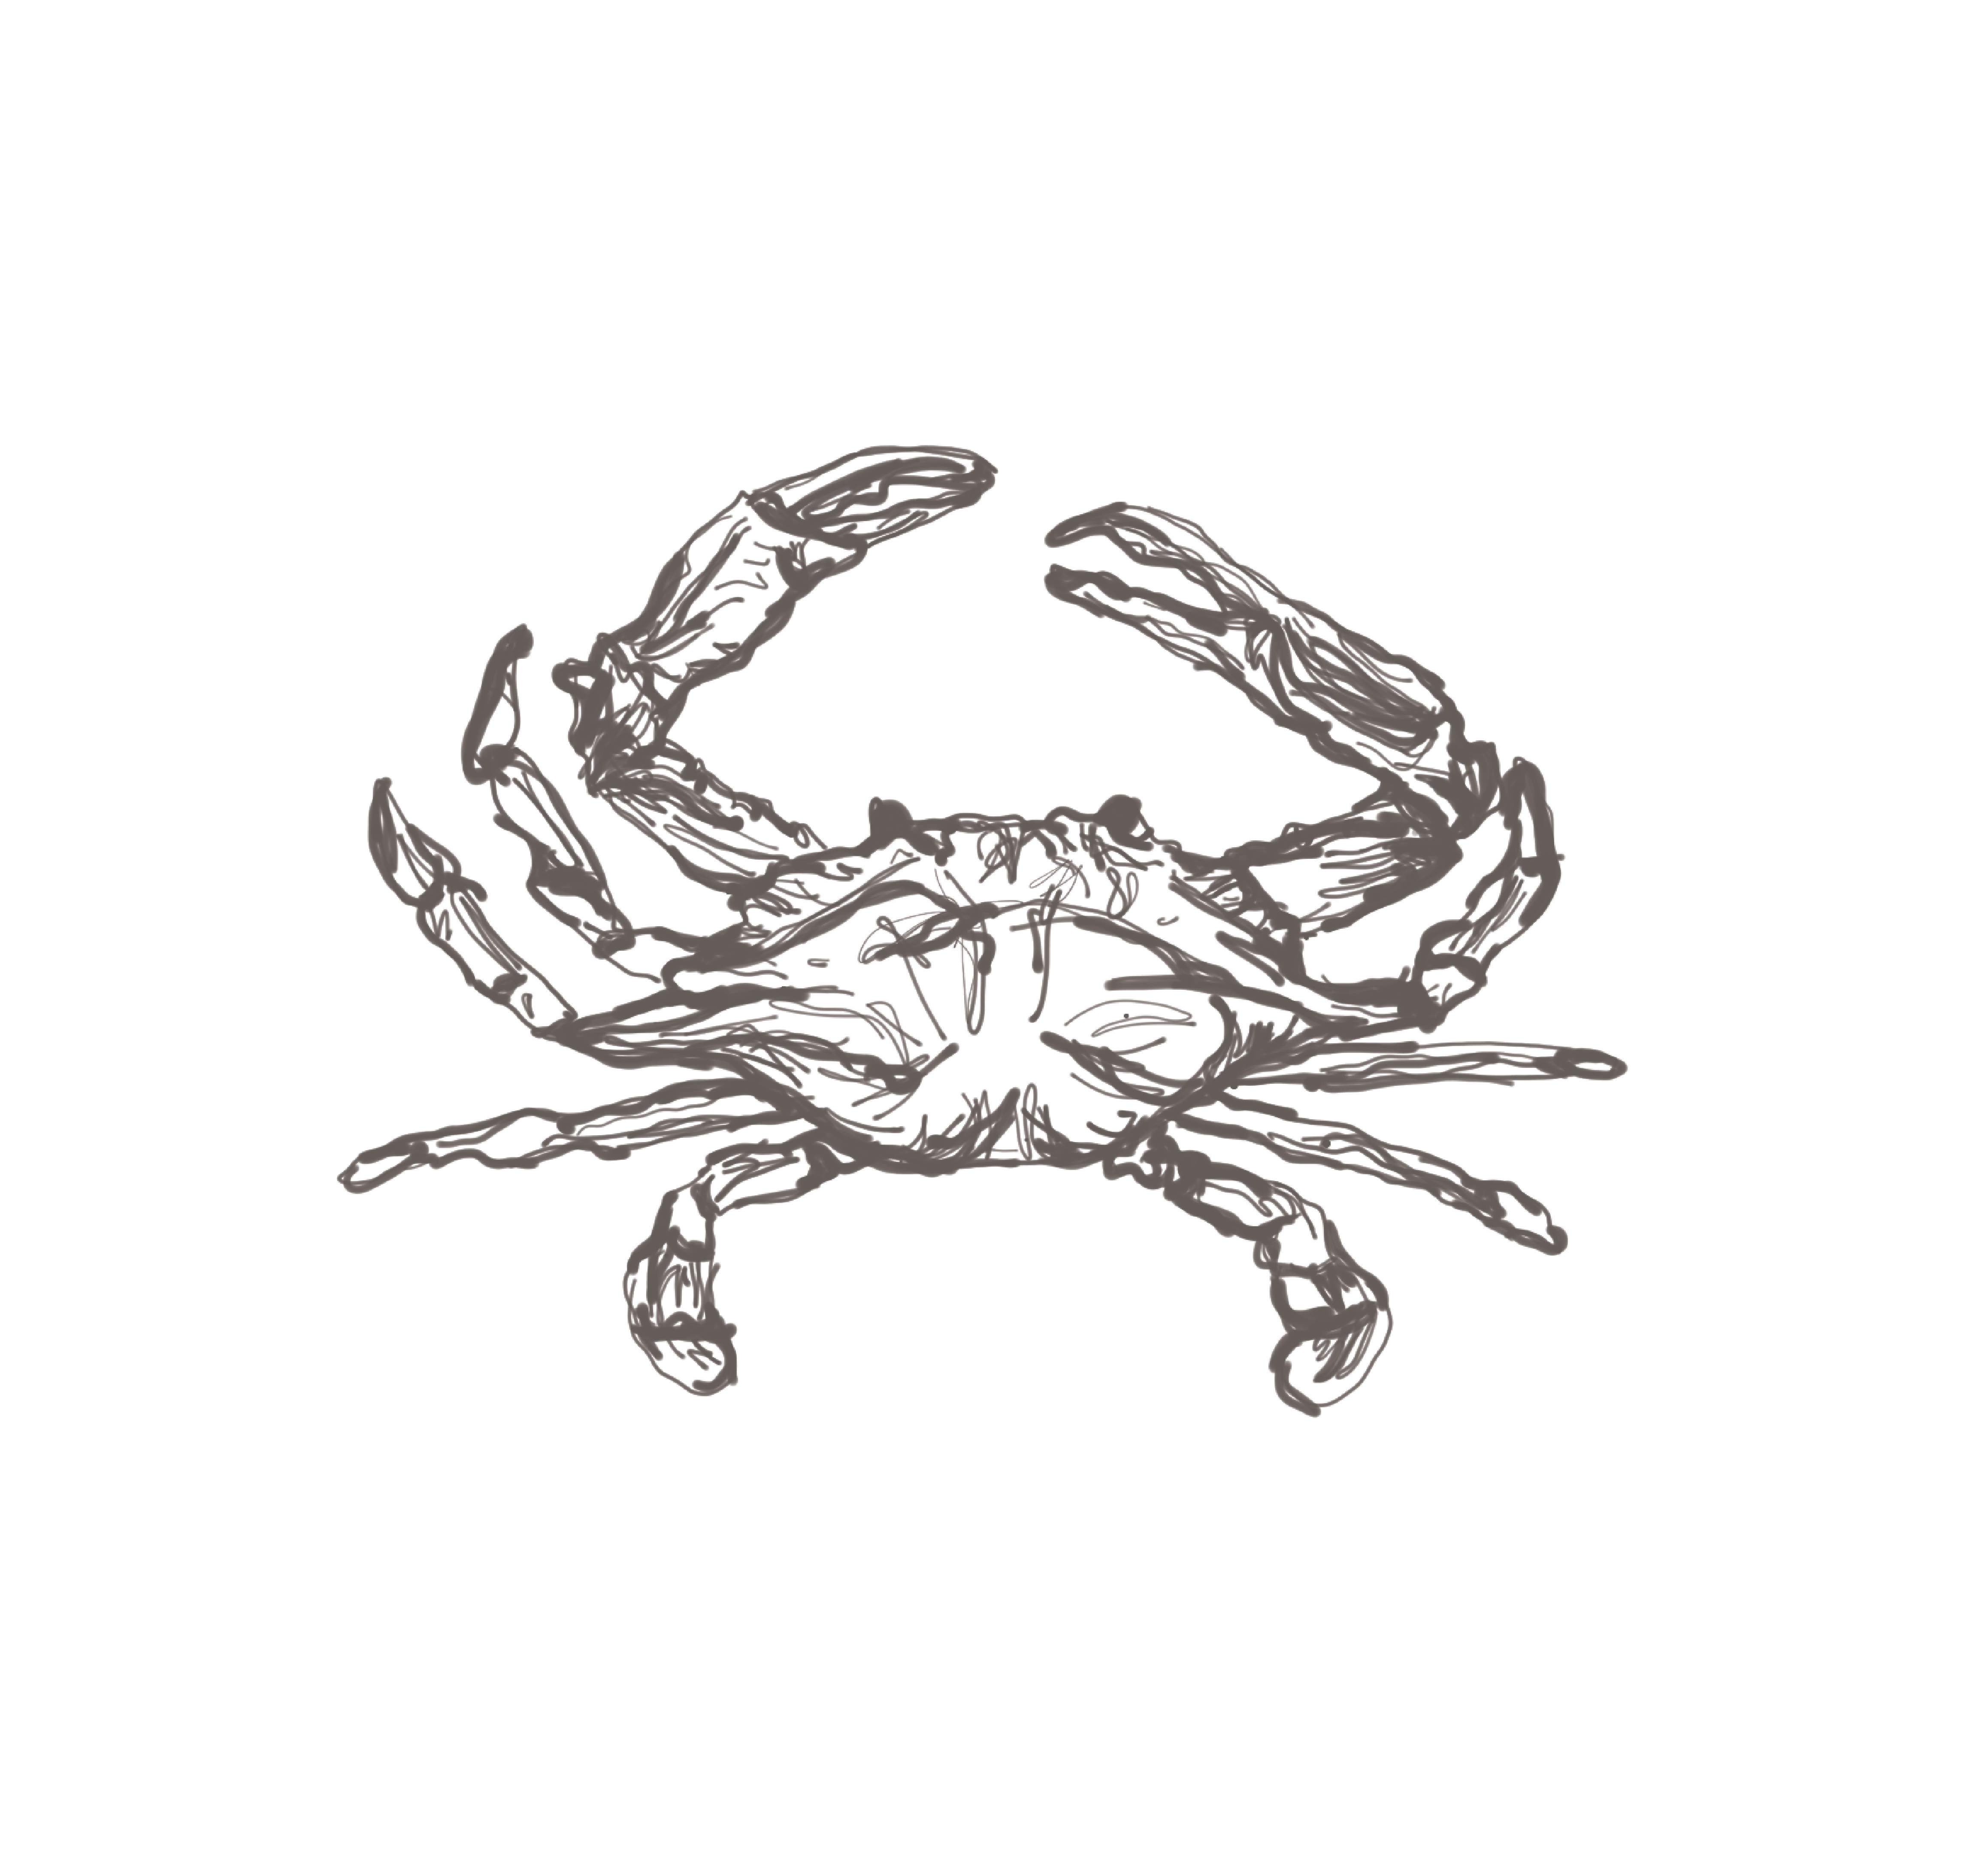 Adobe Draw with iPencil on iPad, Crab for Wedding Invitation